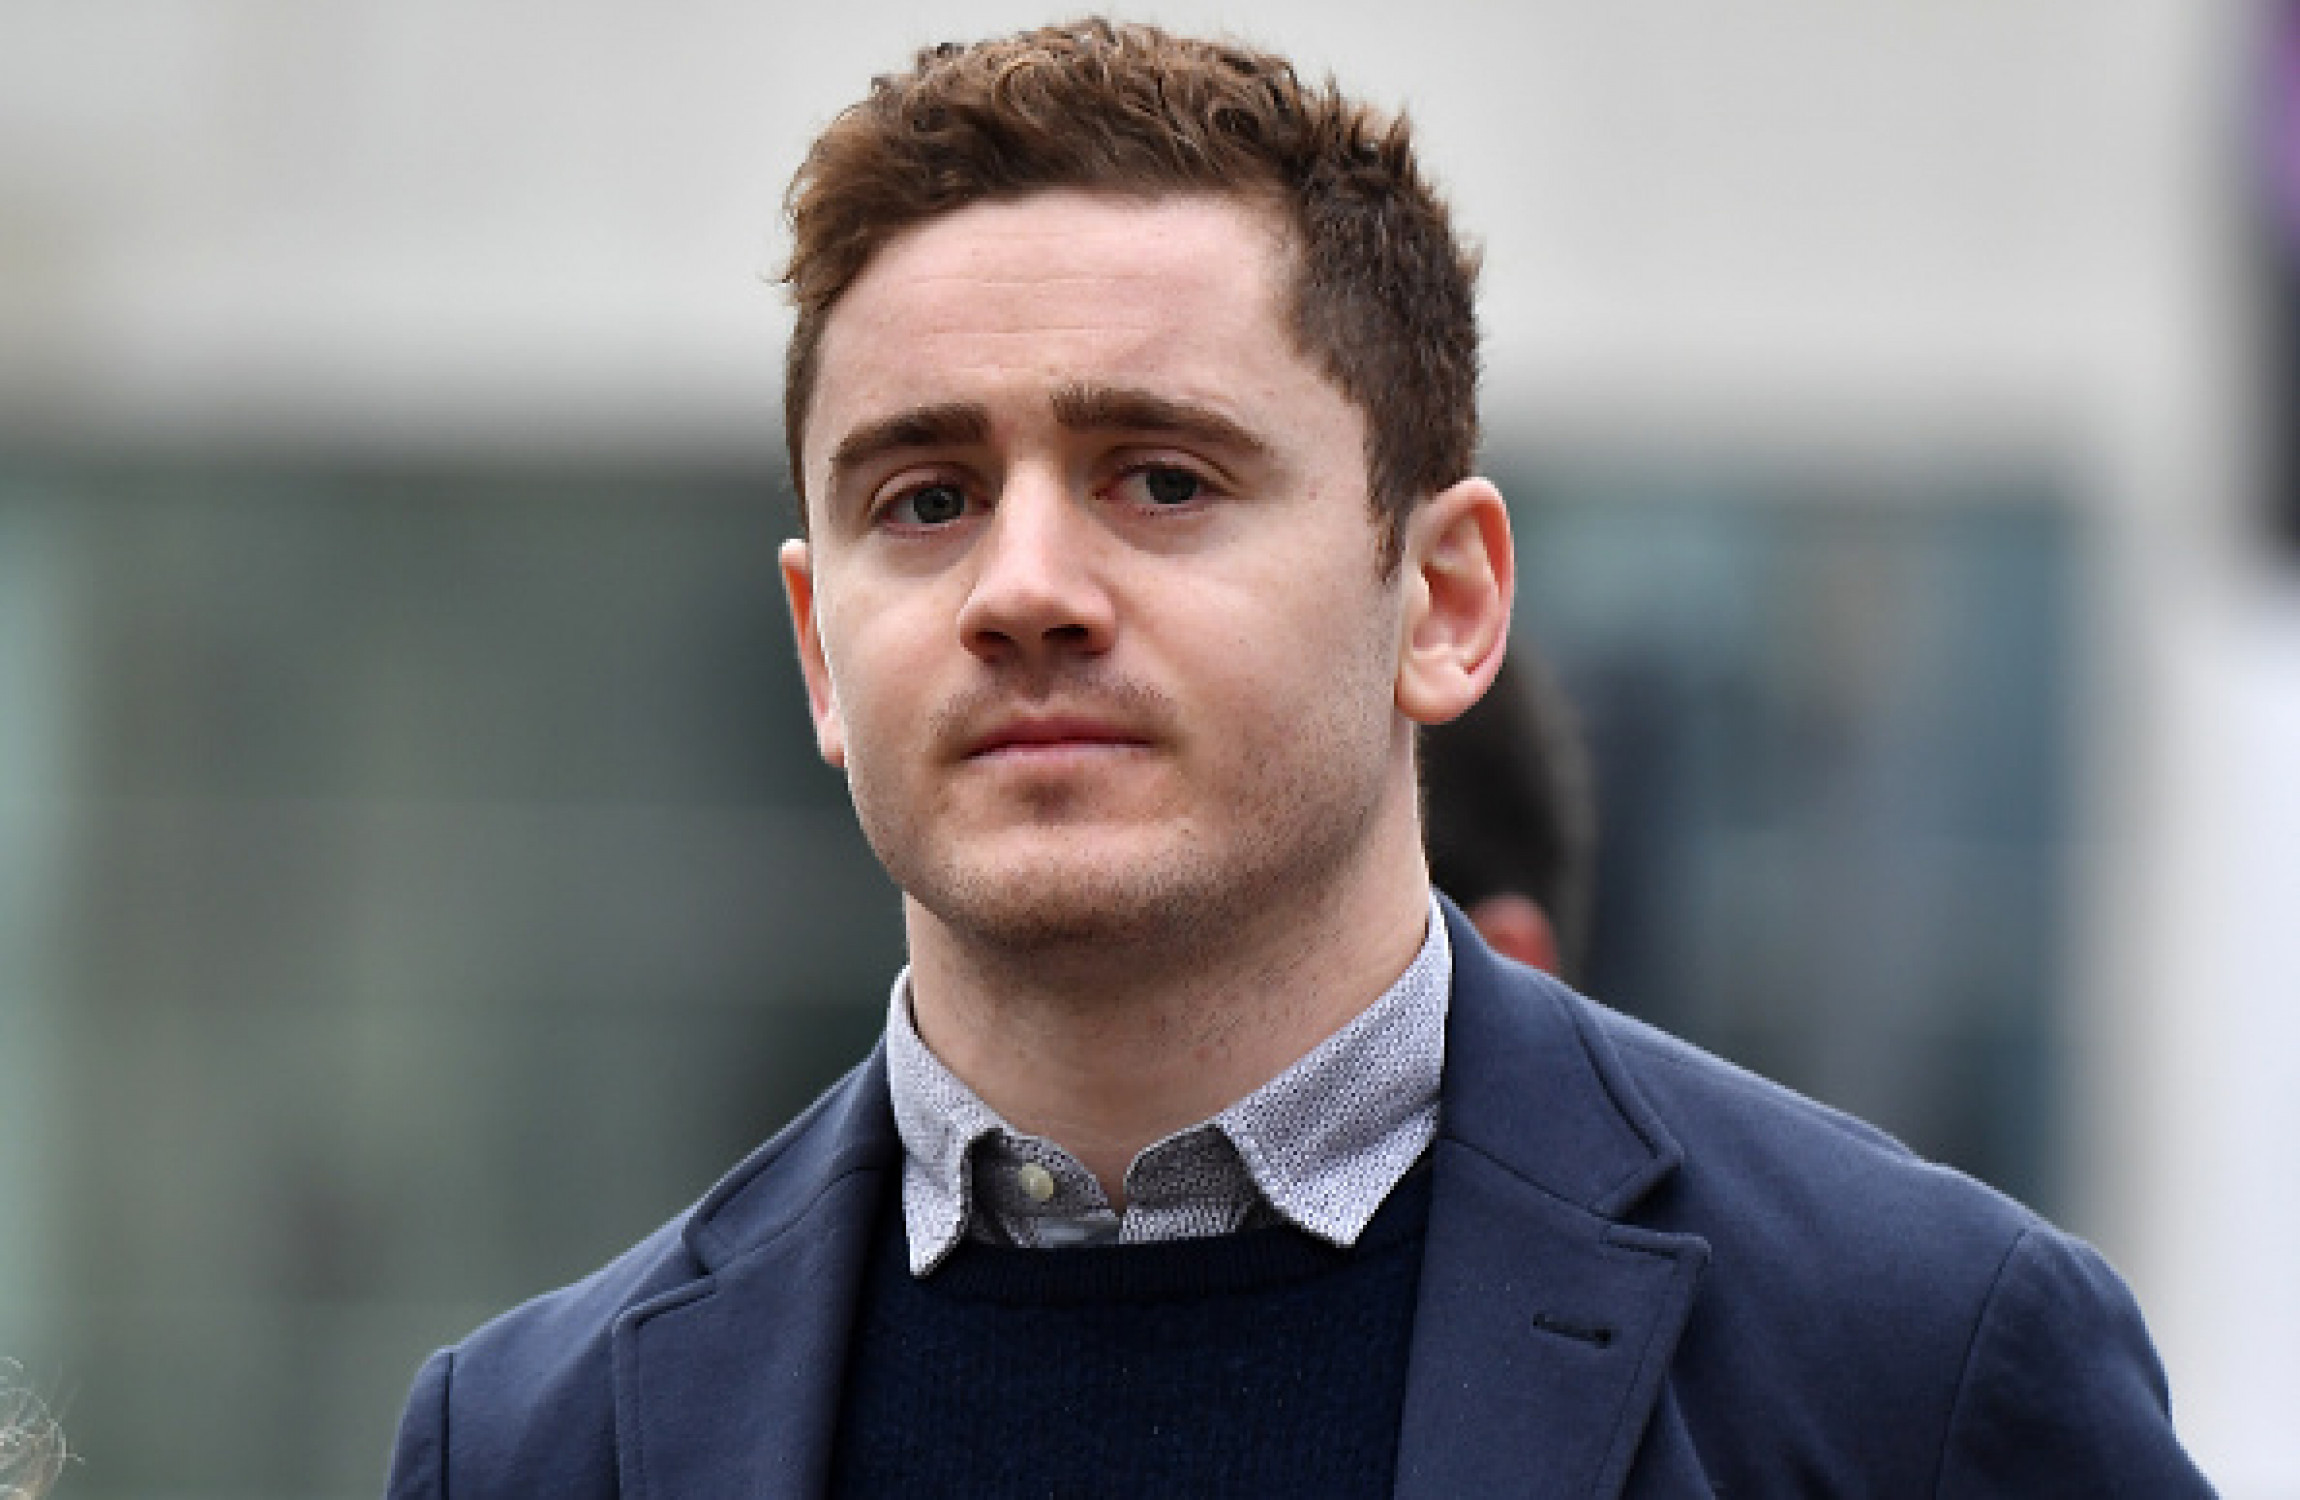 Paddy Jackson Issues Statement After Being Found Not Guilty Of Rape